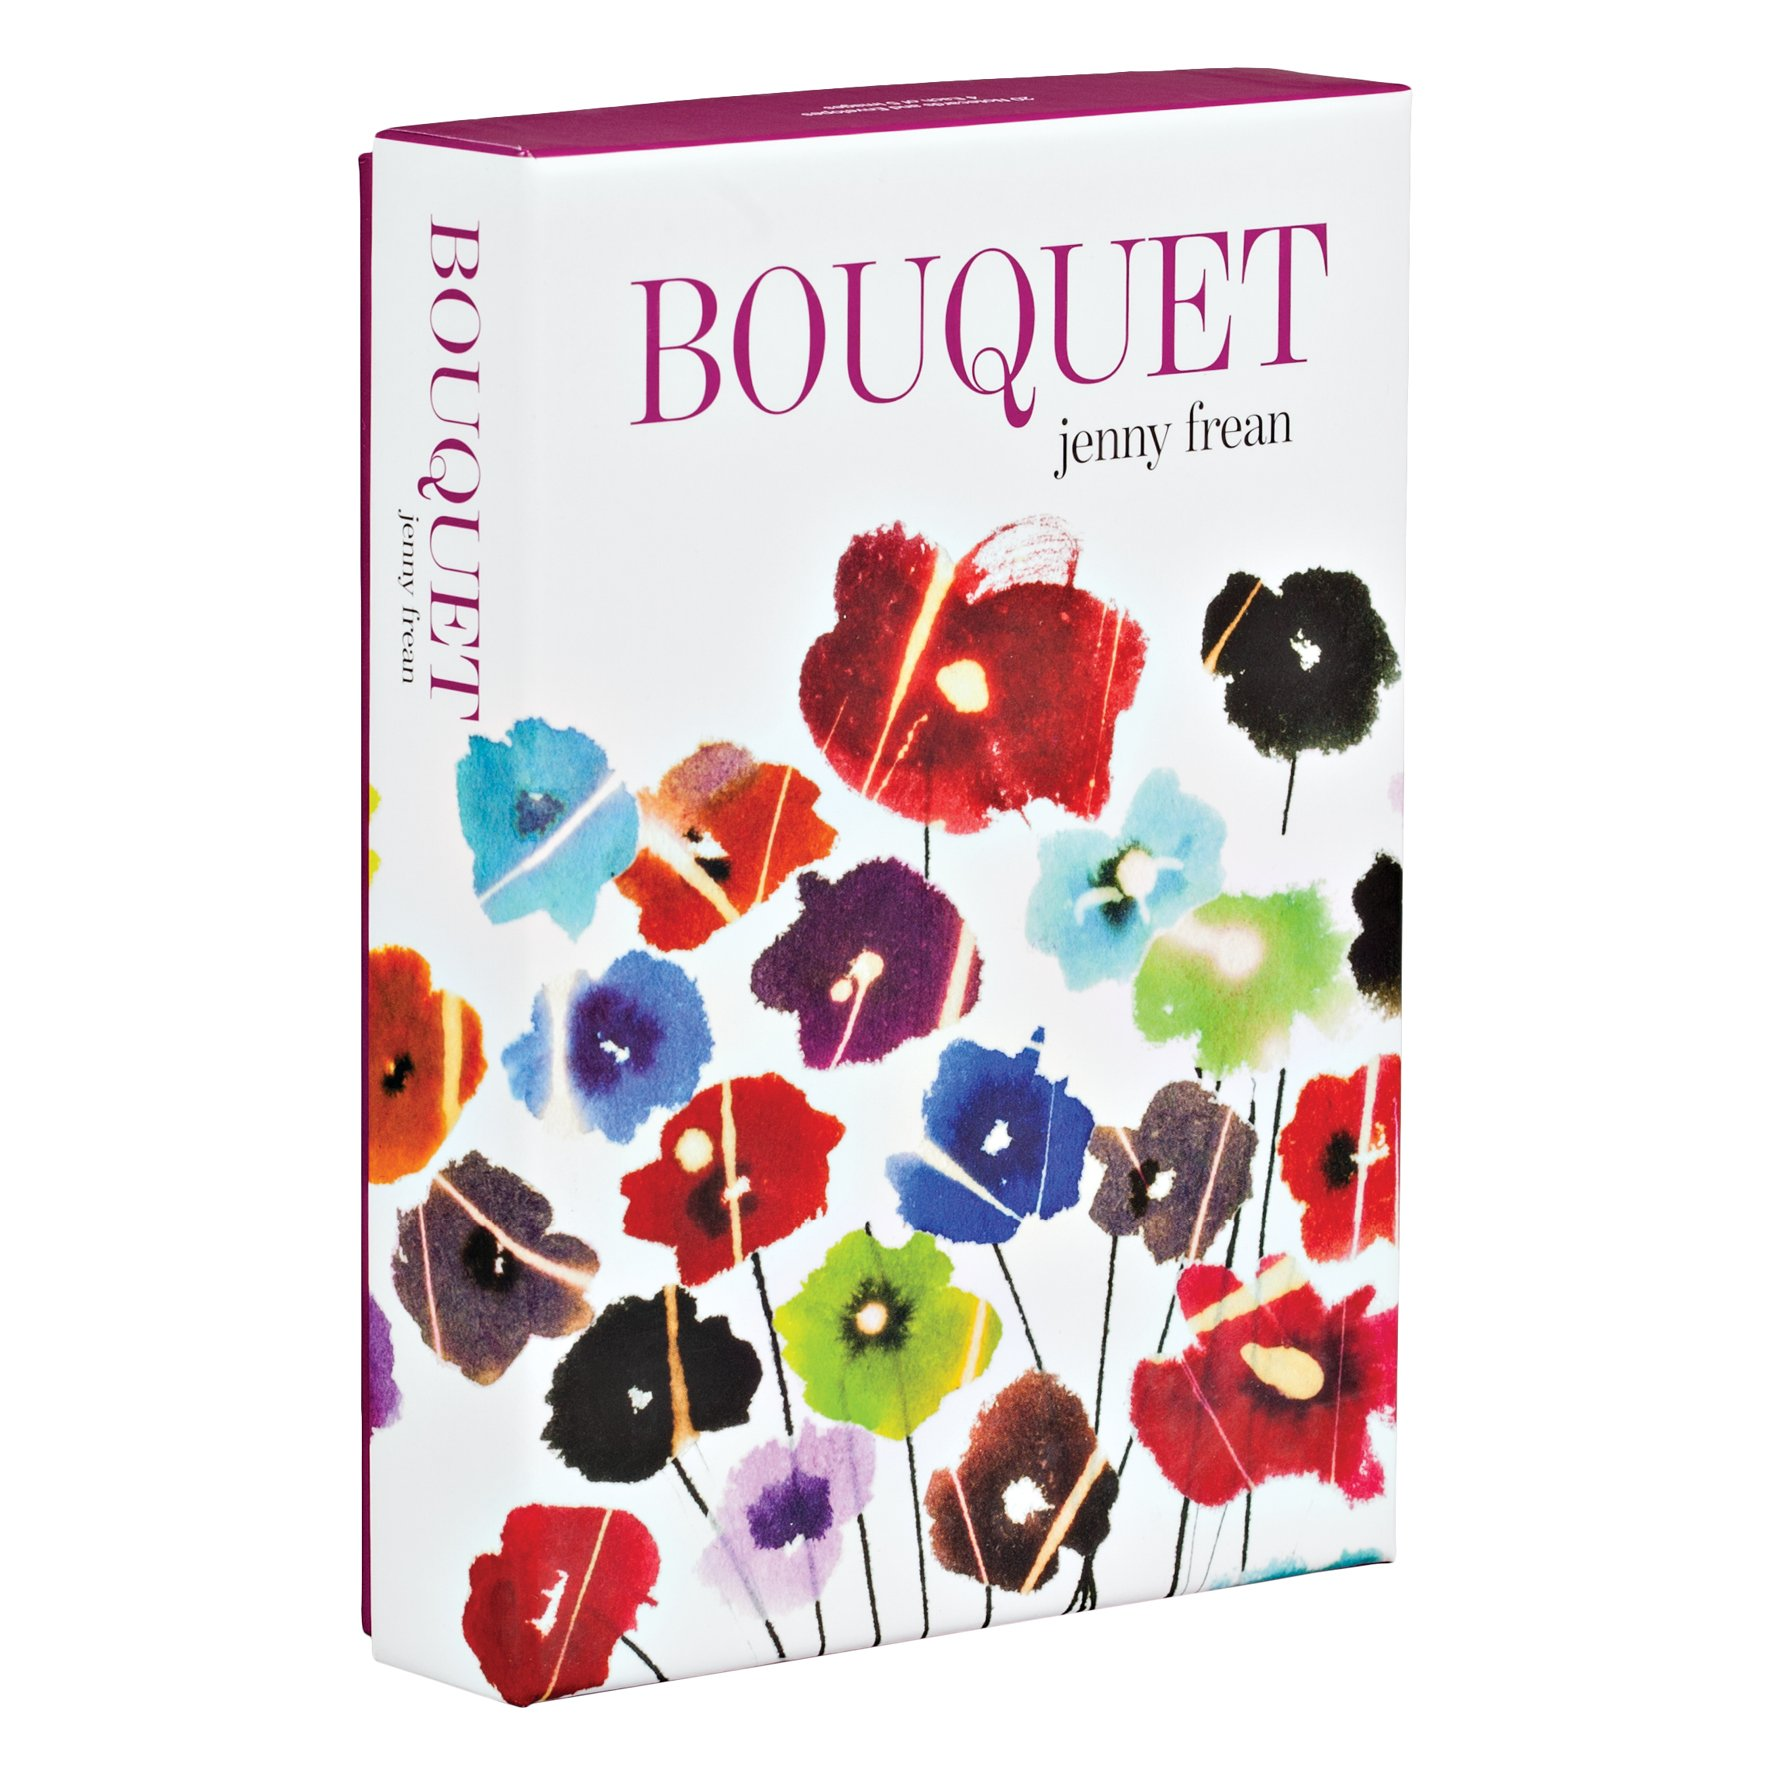 Download Bouquet: Long Notecard Boxes -- stationery boxes filled with 20 Notecards for Greetings, Birthdays or Invitations ebook